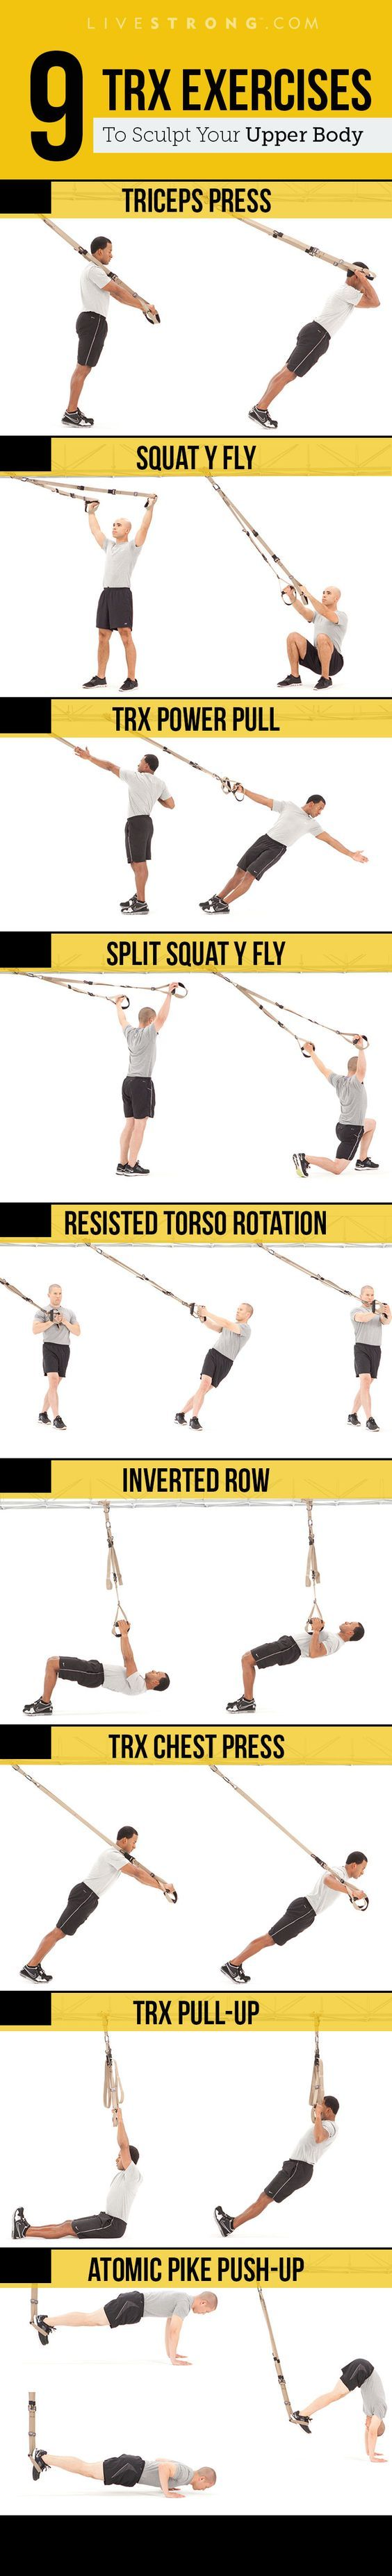 LiHao Schlingentrainer Suspensiontrainer TRX Functional Training Fitness - http://www.amazon.de/dp/B00RLH0M6C